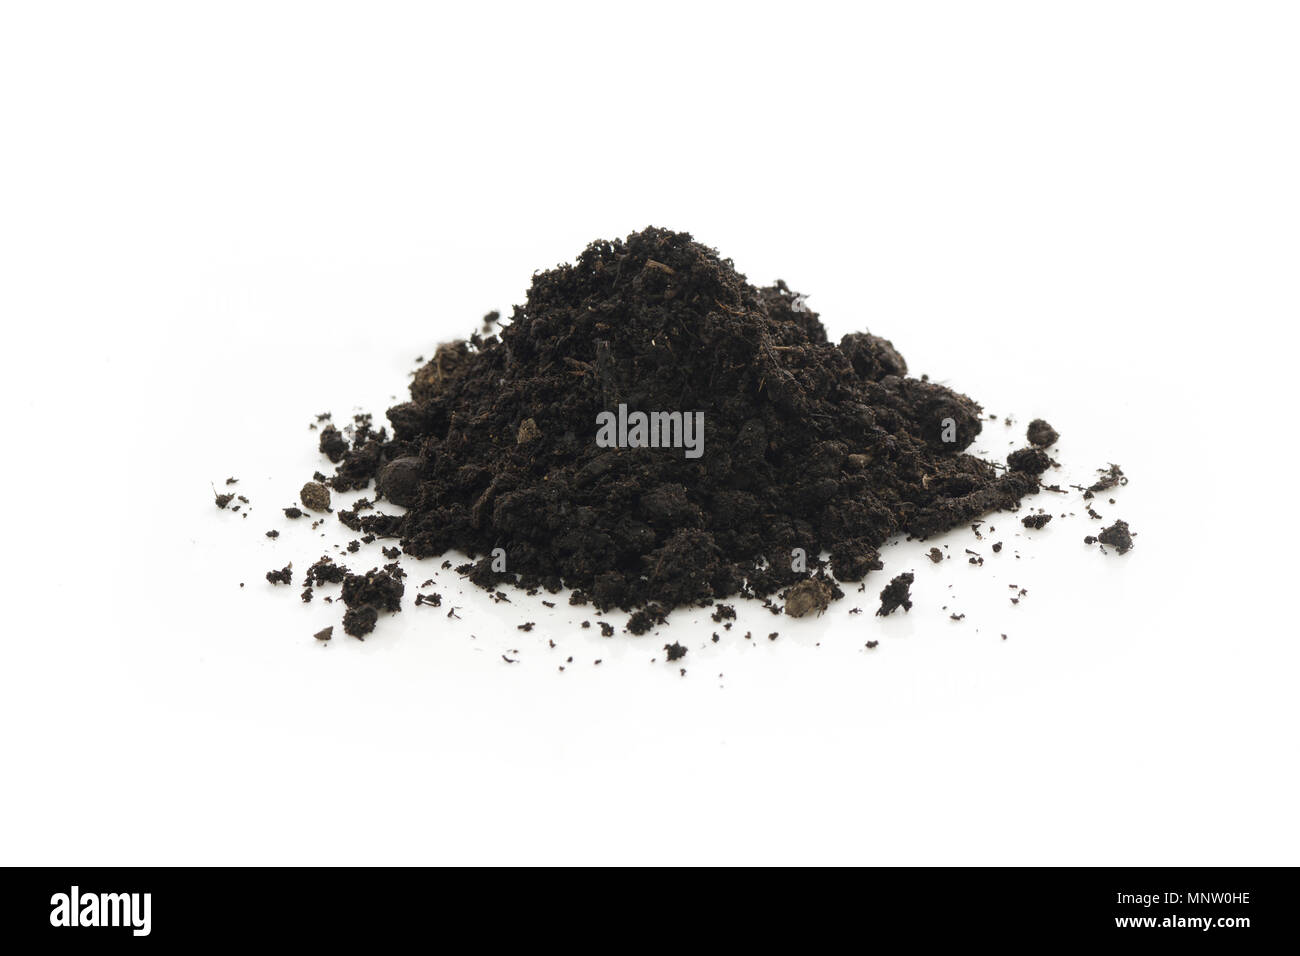 Compost, organic fertilizer, soil amendment, used in horticulture and gardening. Closeup of an isolated cone pile on white studio background. - Stock Image